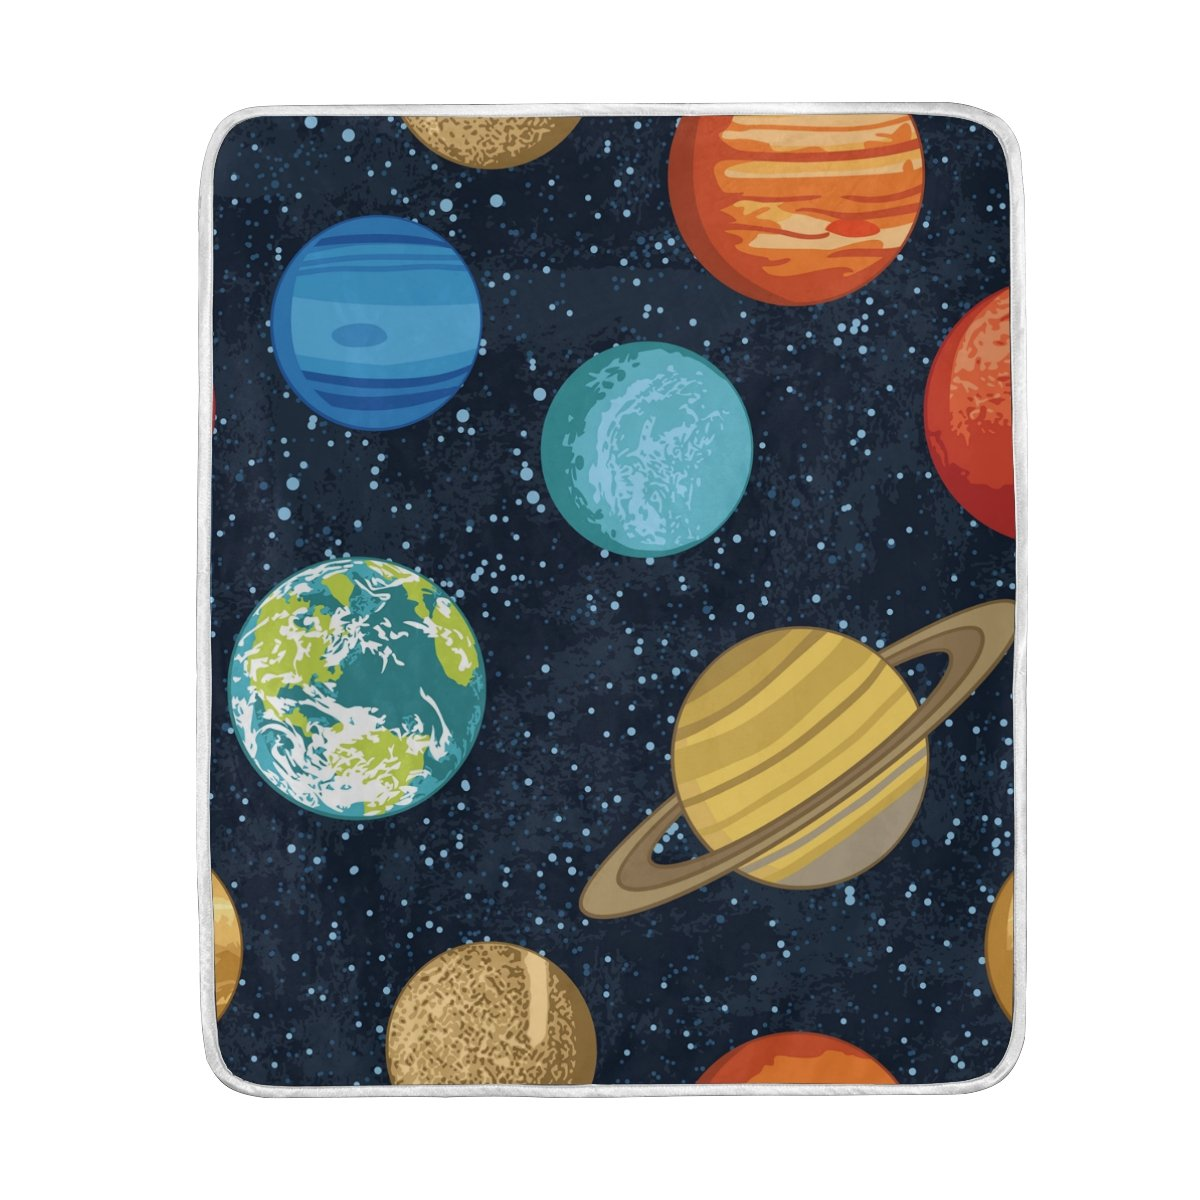 ALAZA Solar System Planets Blanket Luxury Throw Personalized Stylish Fuzzy Soft Warm Lightweight Blanket for Bed Counch All Season Unisex Adult Men Women Boys Girls 50x60 inches